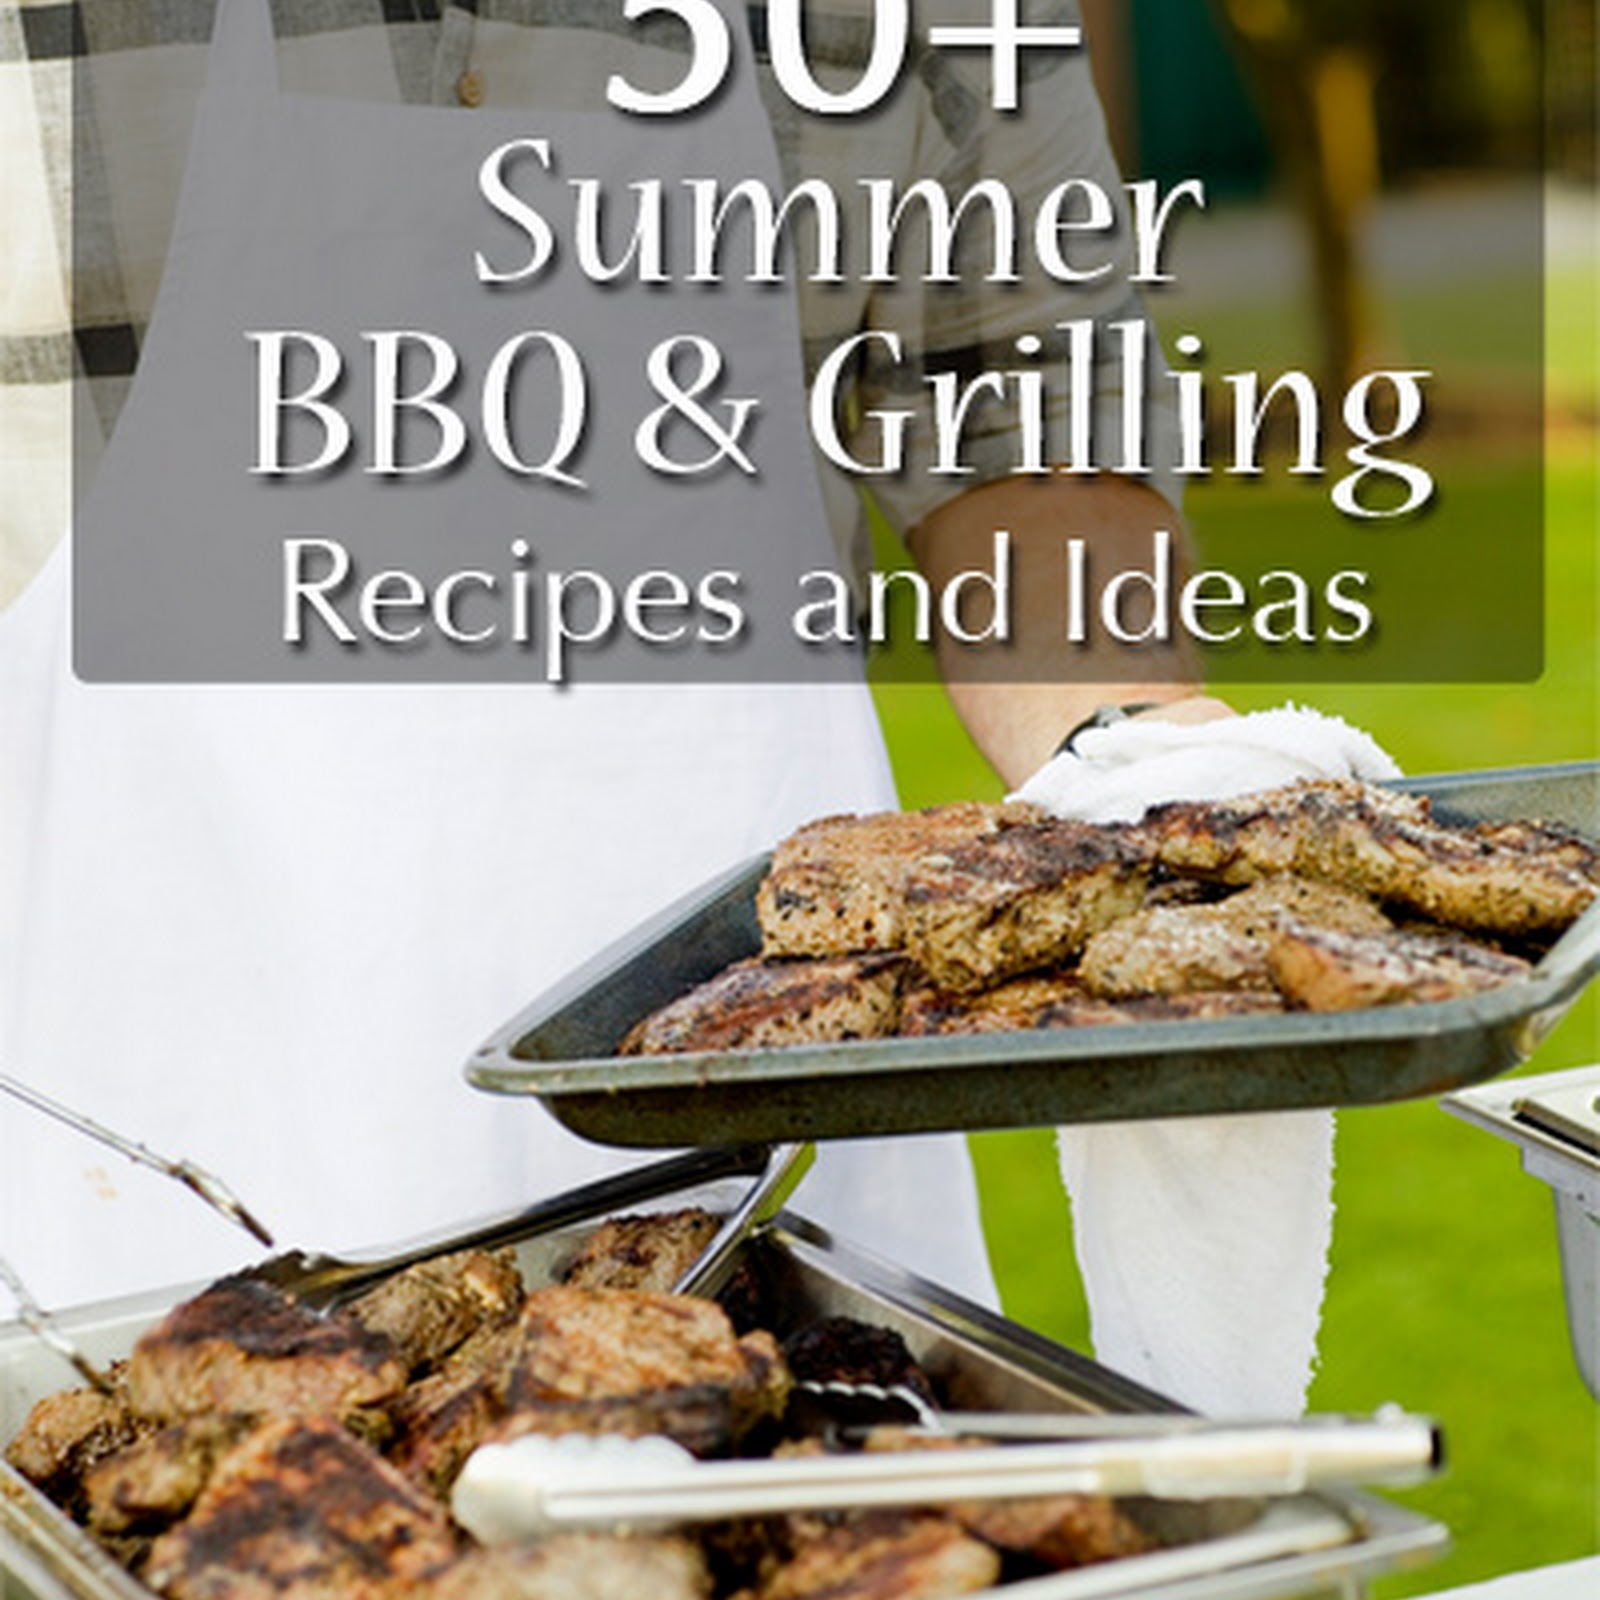 100+ Summer BBQ Grilling and Picnic Recipes & Ideas